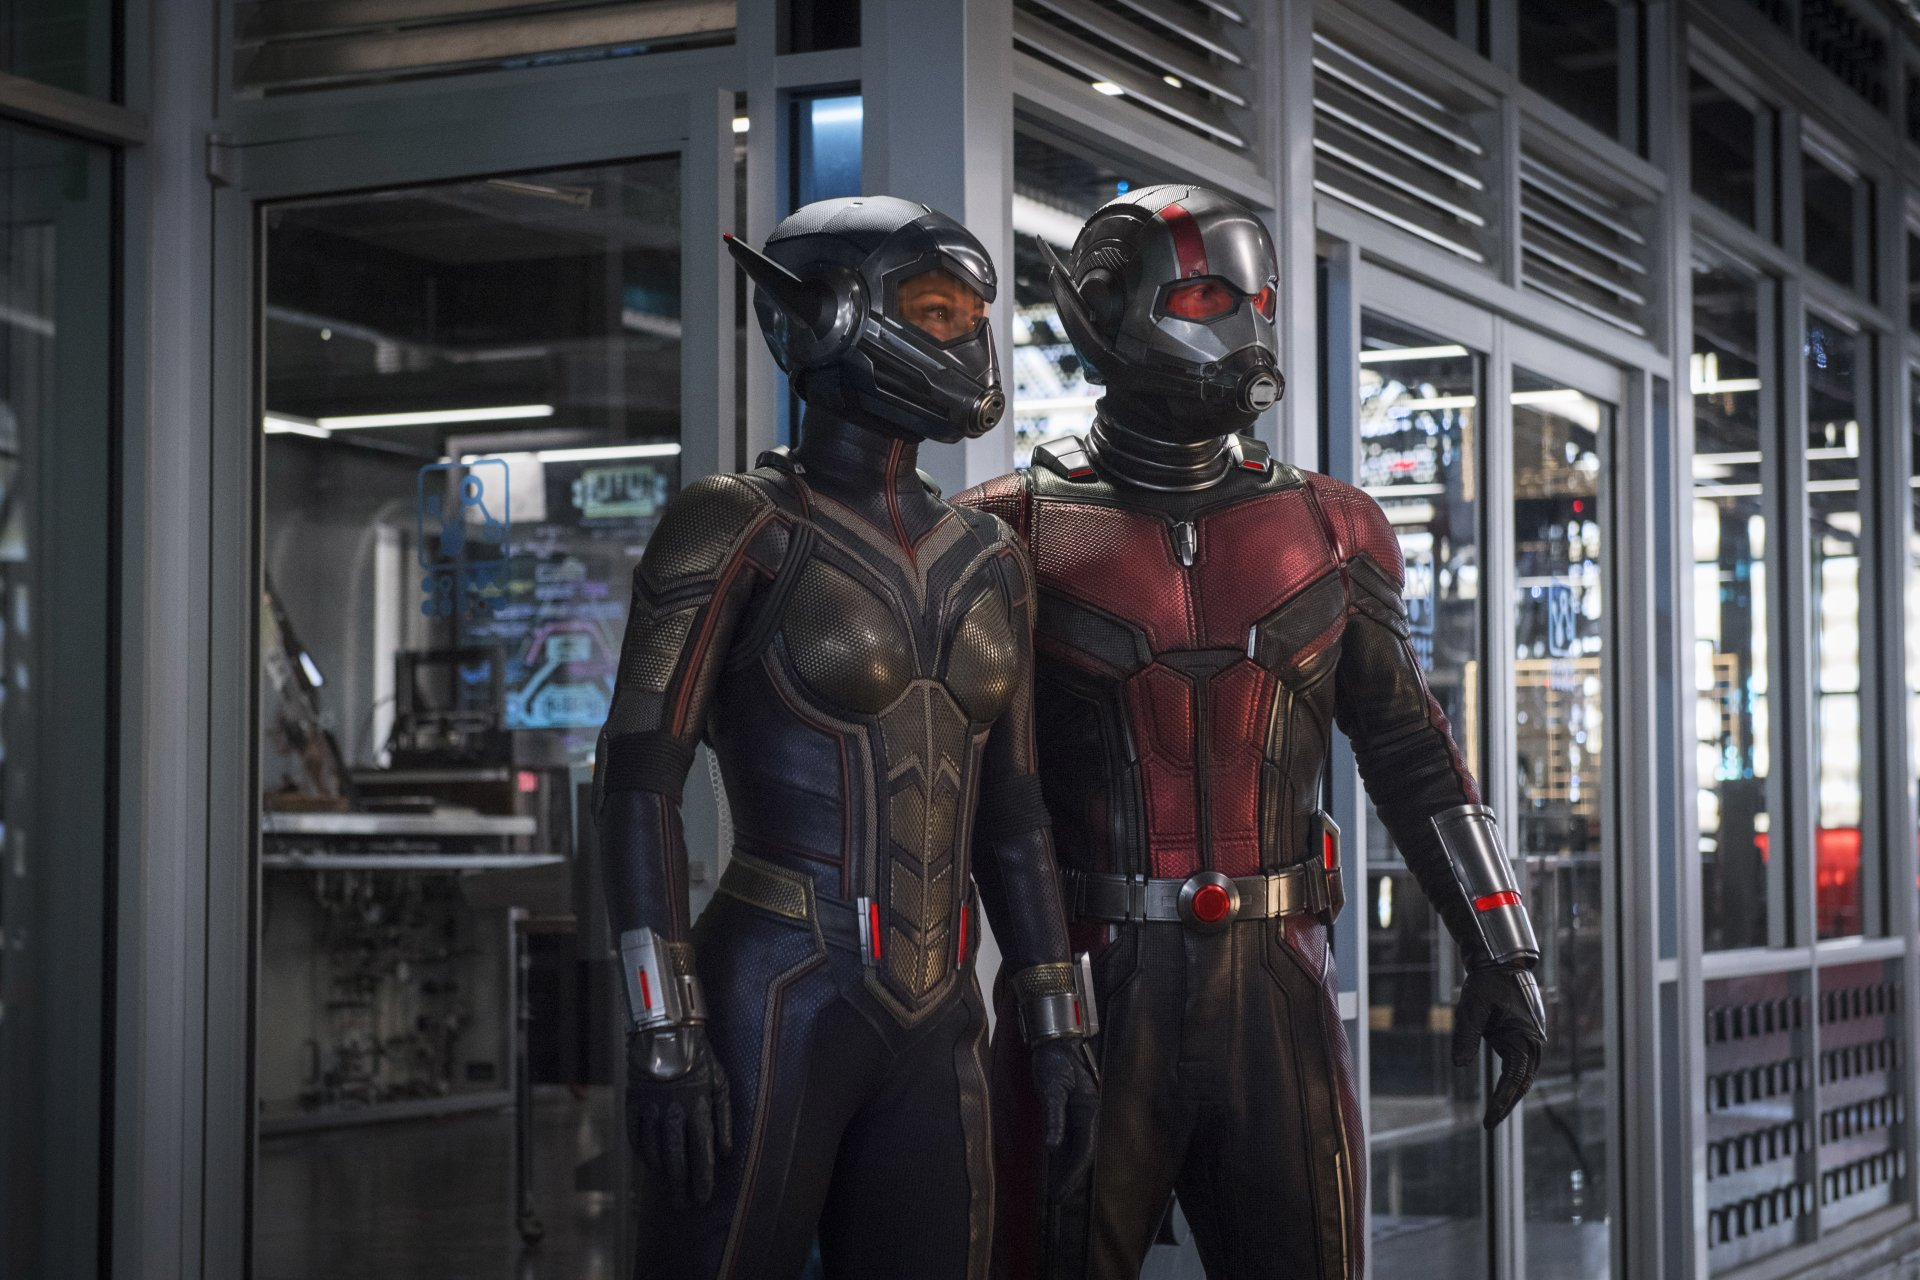 Movie - Ant-Man and the Wasp  Ant-Man Wasp (Marvel Comics) Paul Rudd Evangeline Lilly Wallpaper